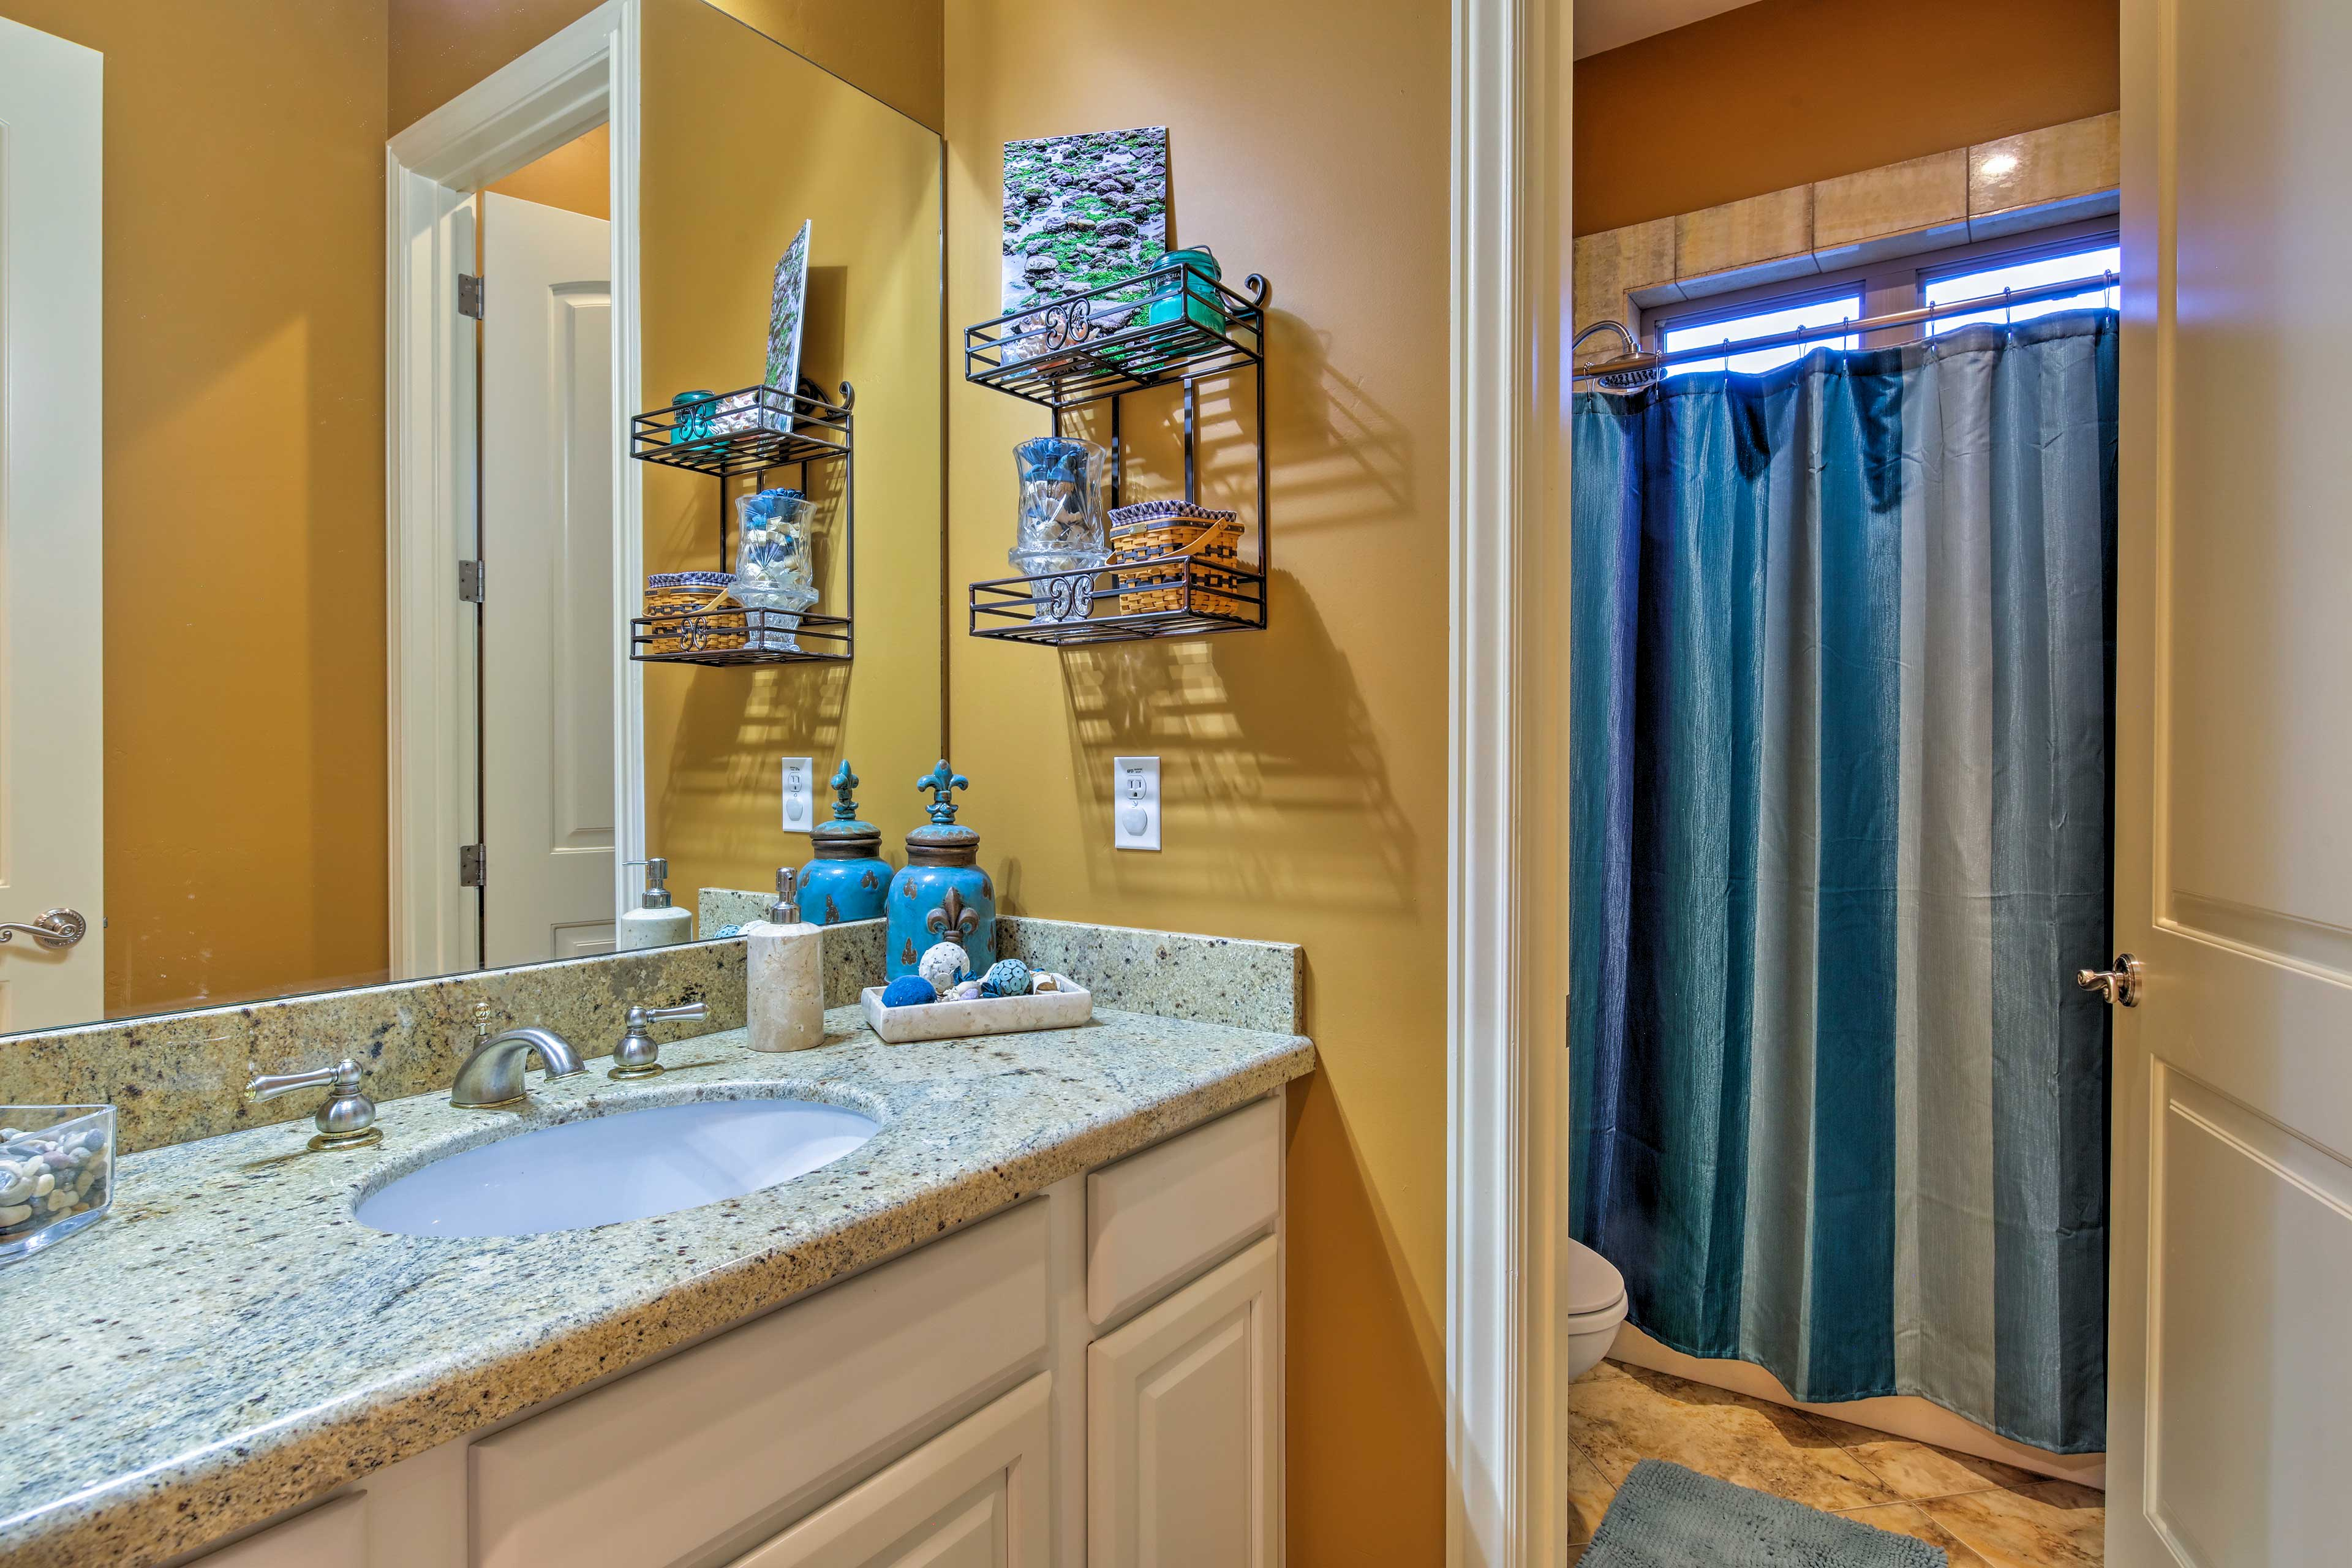 The large counter furnishing this full bathroom provides plenty of storage space